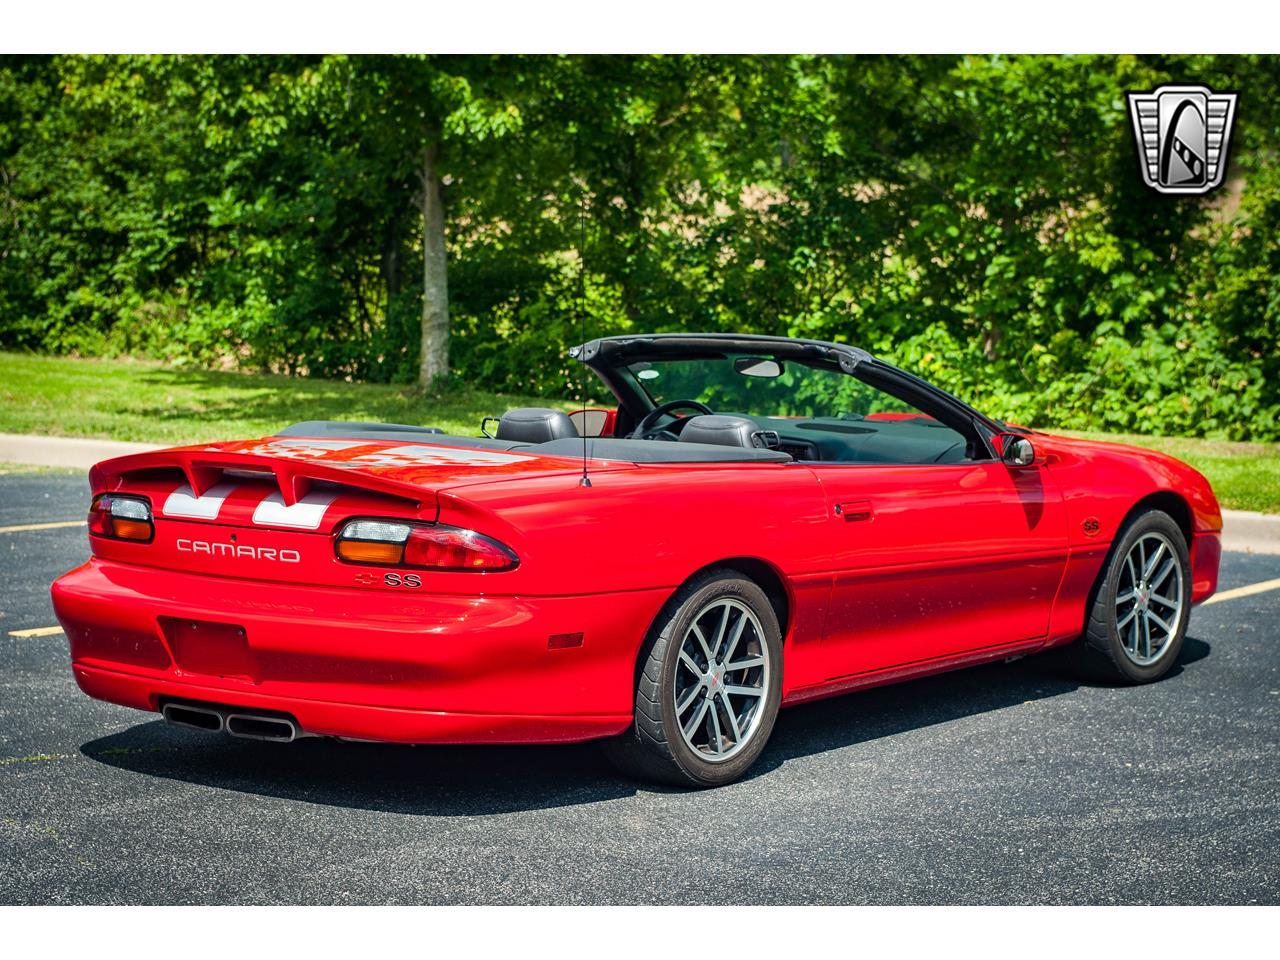 Large Picture of '02 Camaro located in Illinois - $33,500.00 - QB9Z